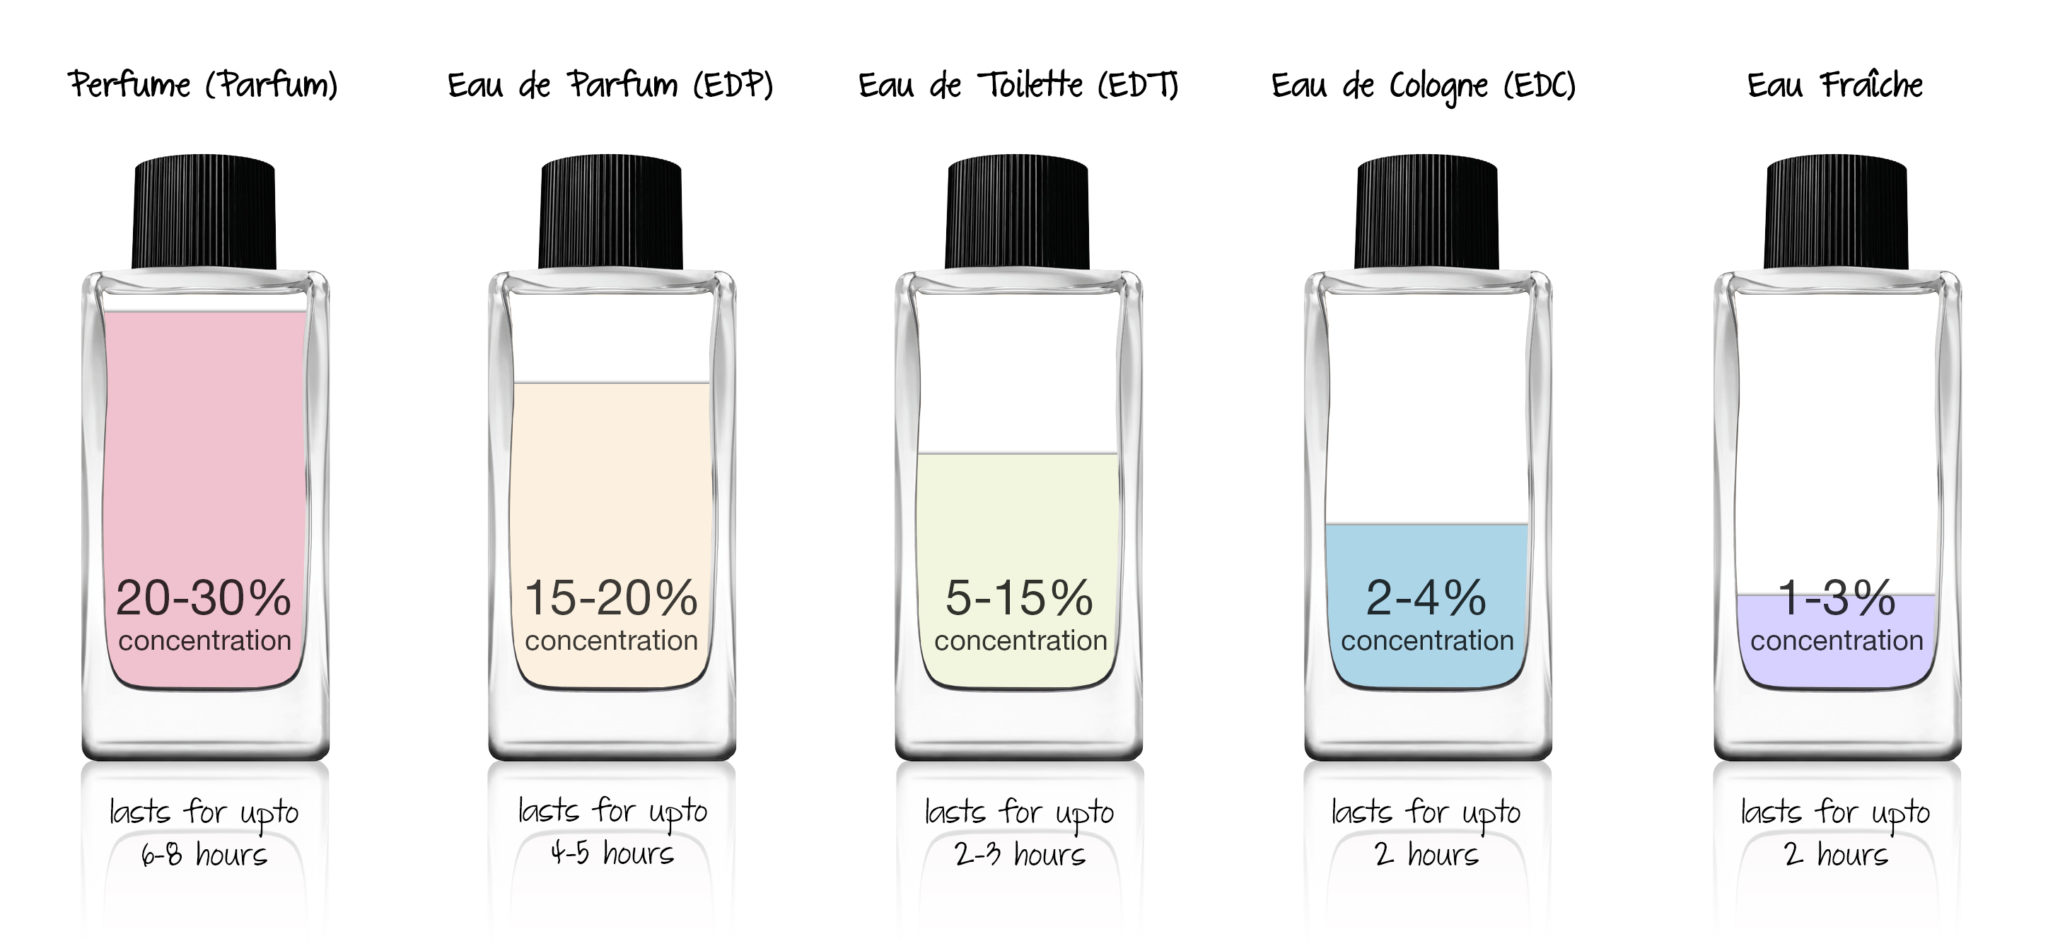 Parfum Concentration Percentages